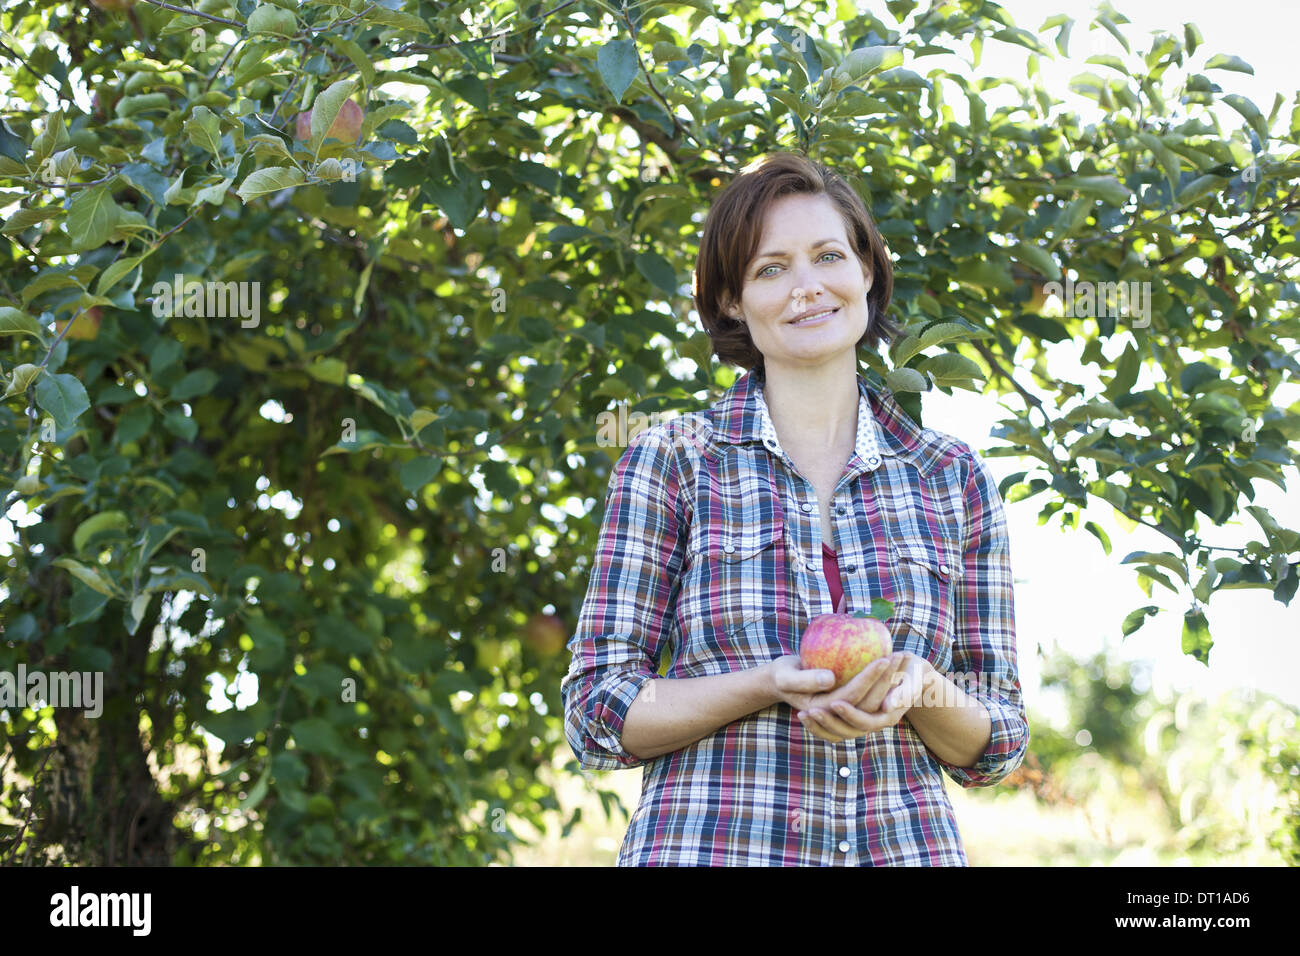 Woodstock New York USA woman holding organic picked apple in orchard - Stock Image